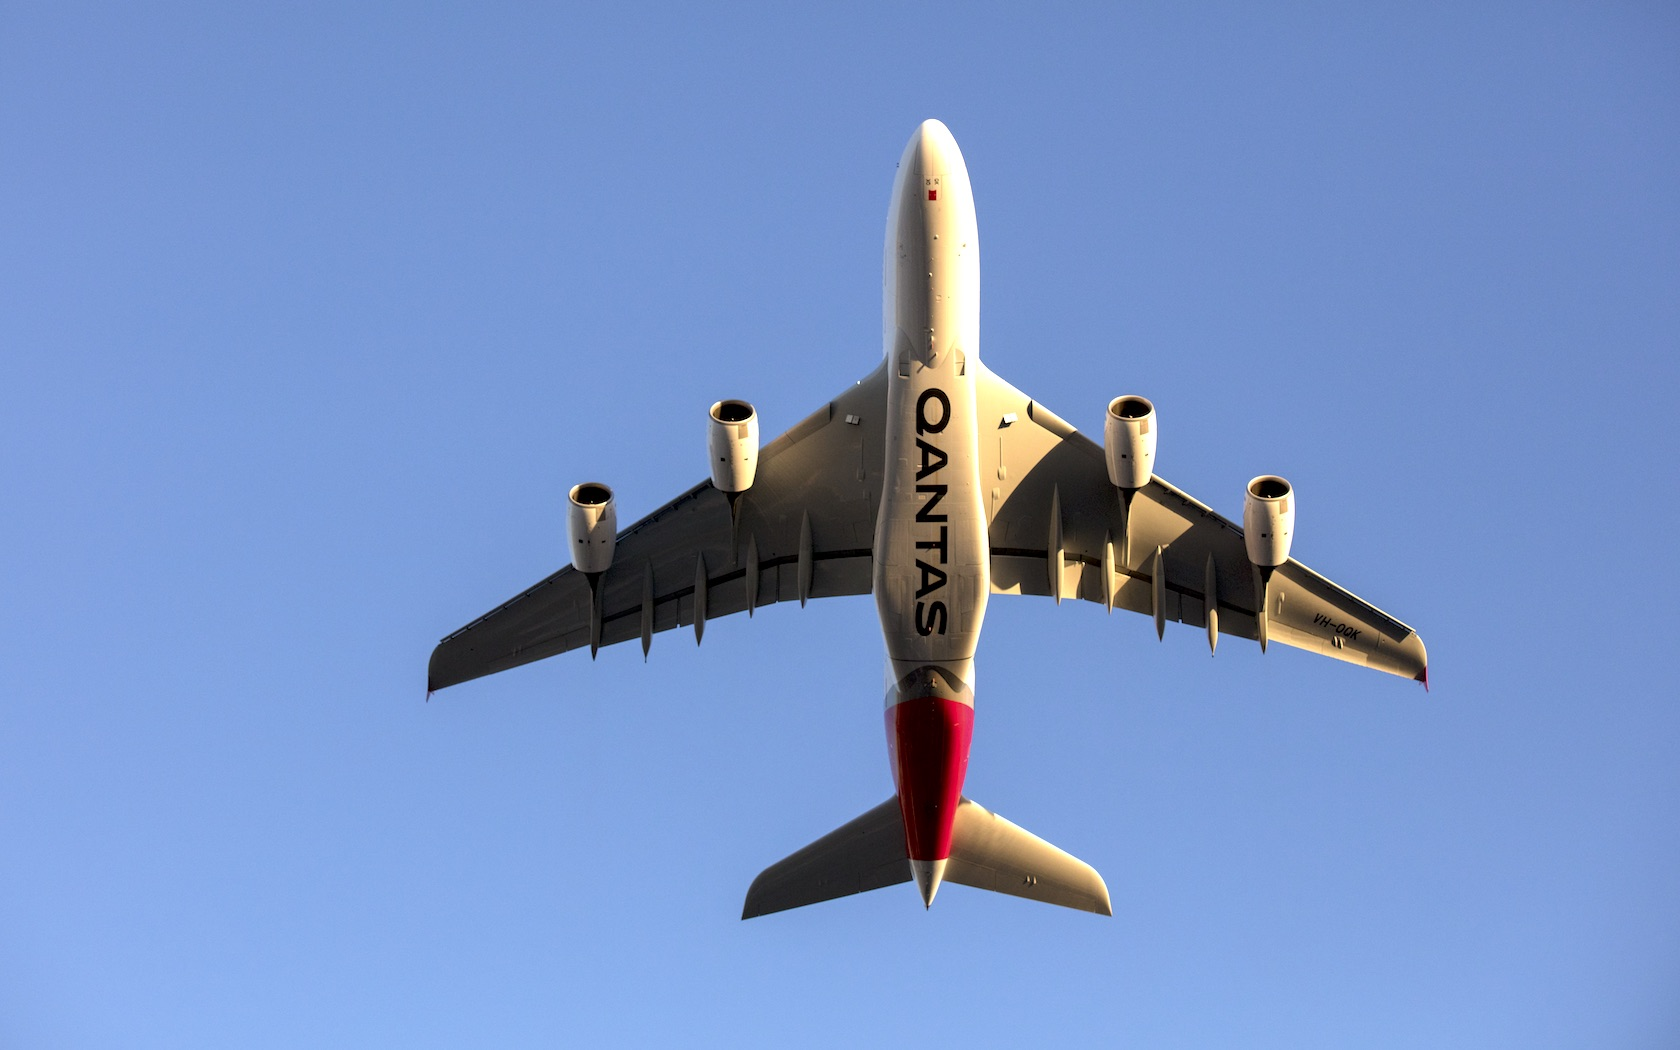 Qantas Is 99 Years Old, And Has No Plans To Slow Down